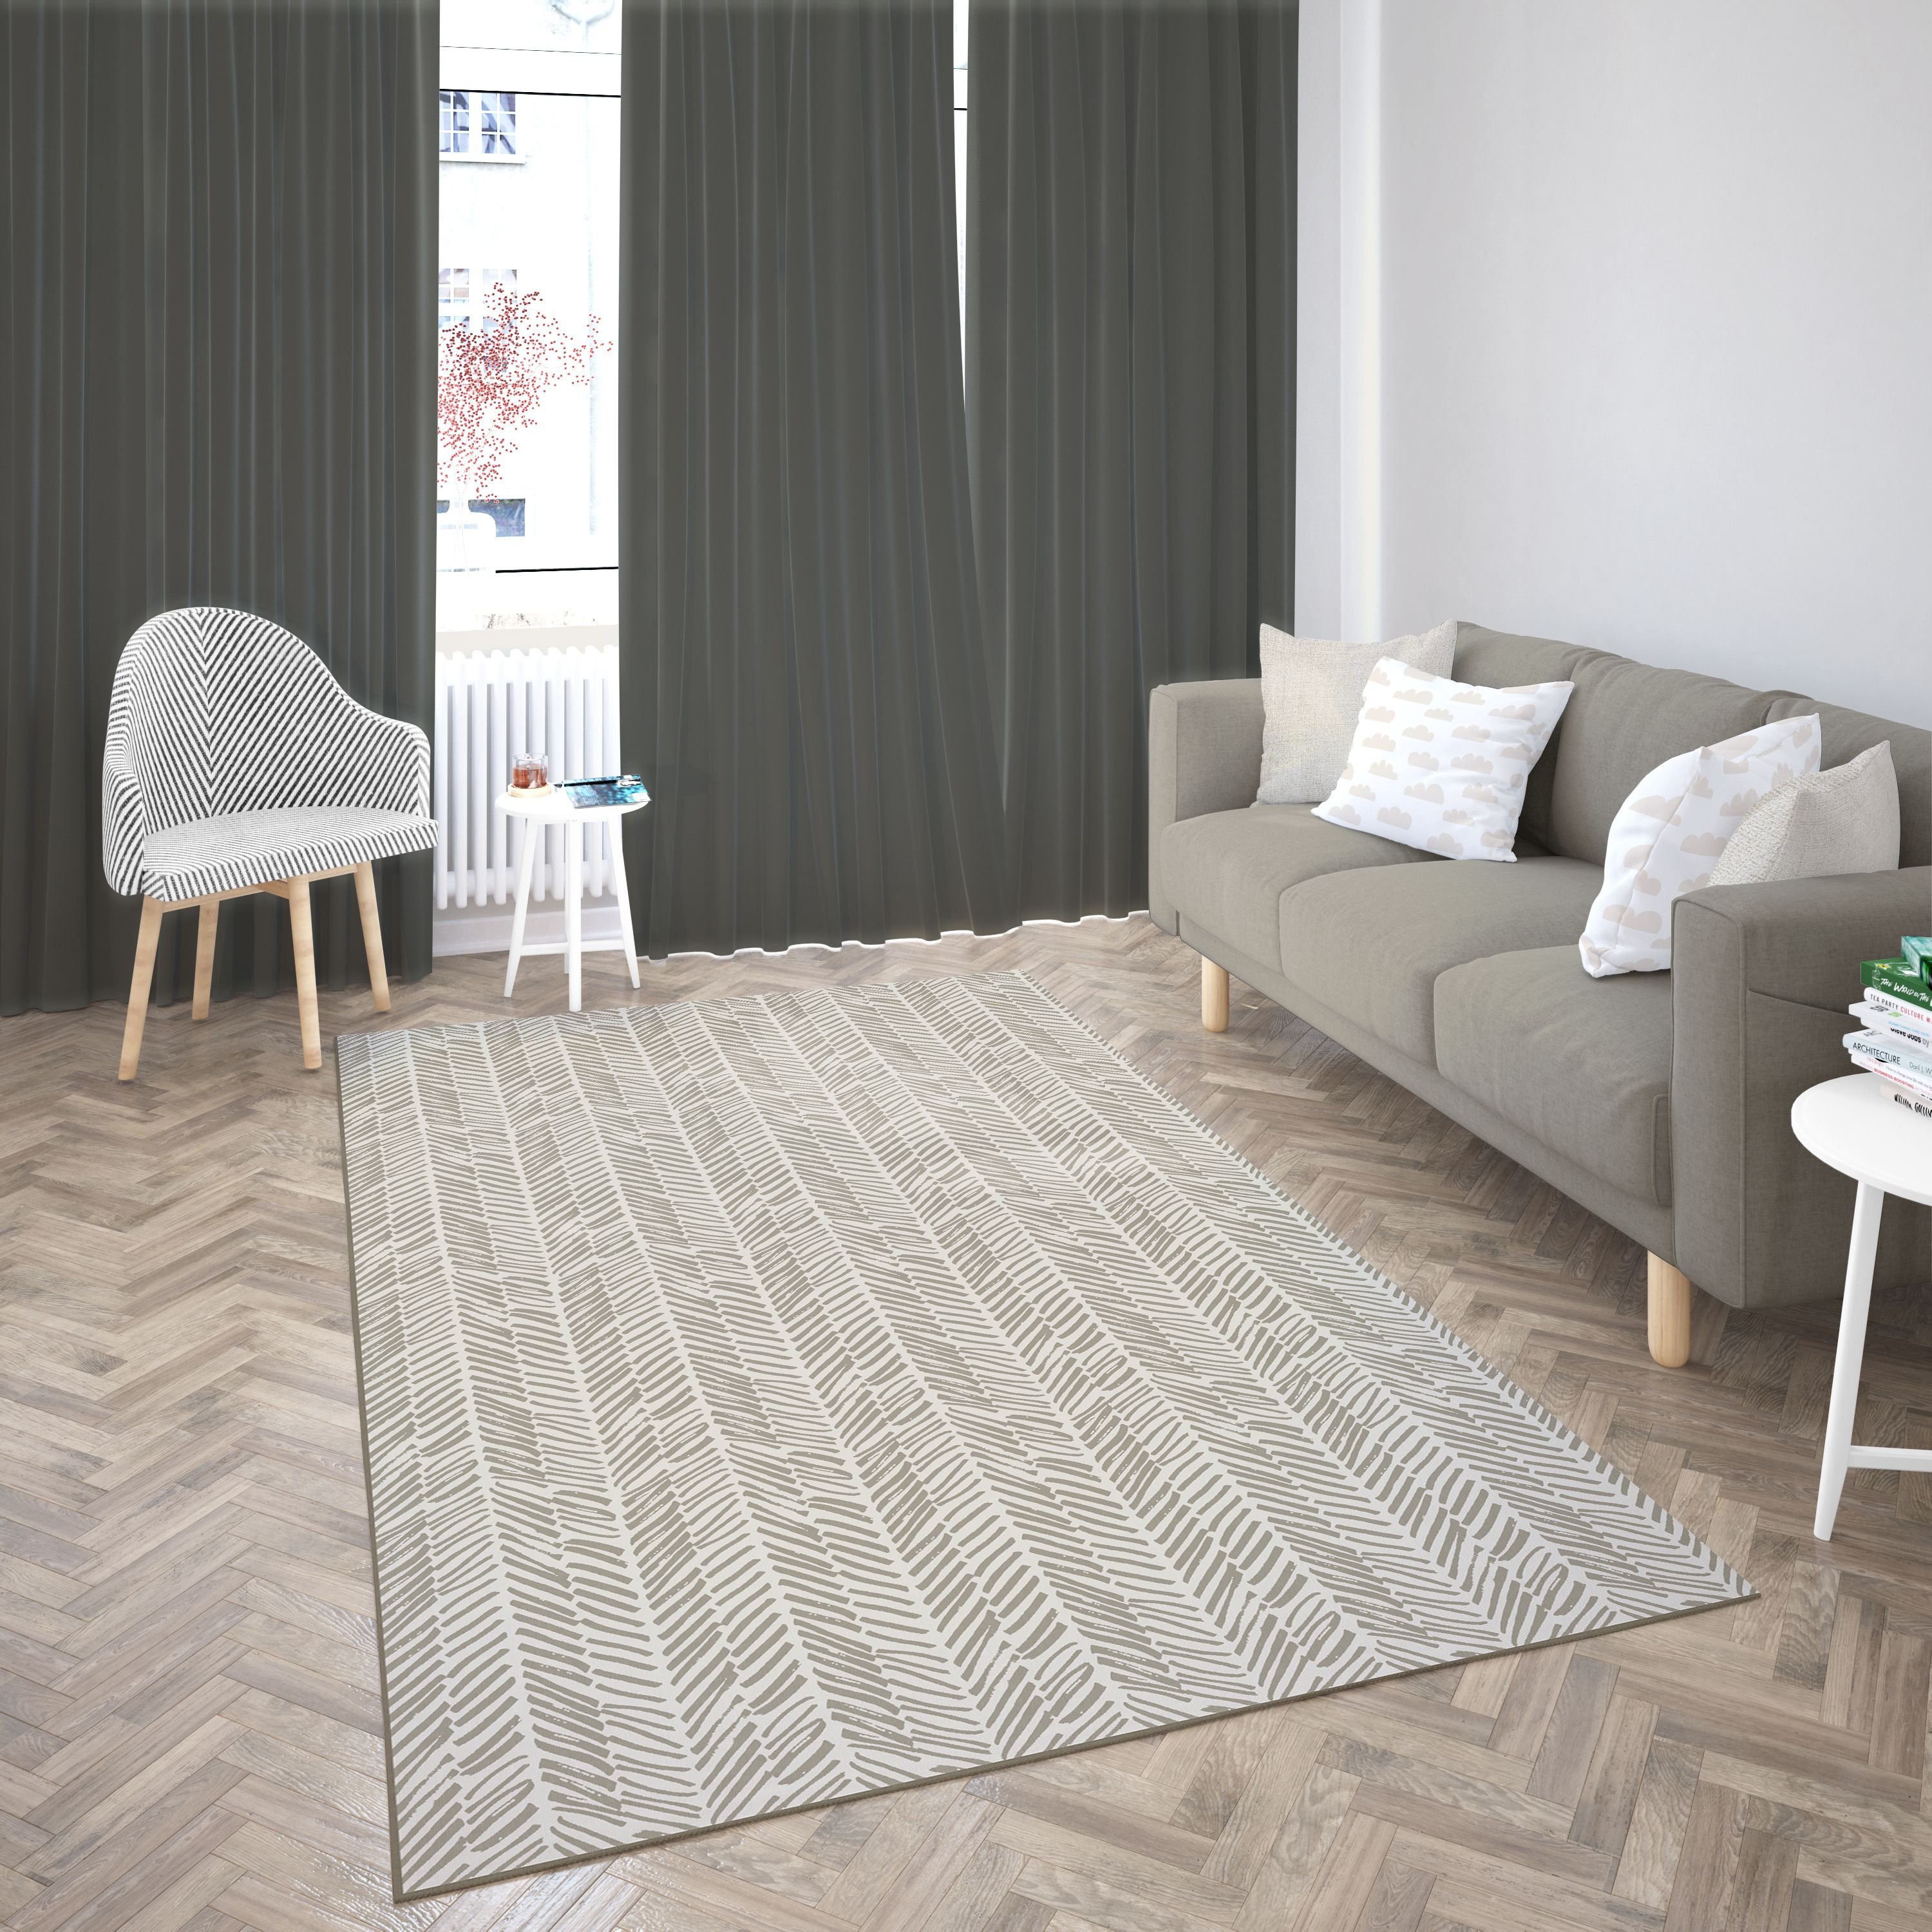 Area rugs look great and are often more practical than broadloom, but if you're going to use them there are a few things you need to keep in mind. Deerlux Modern Living Room Area Rug with Nonslip Backing ...